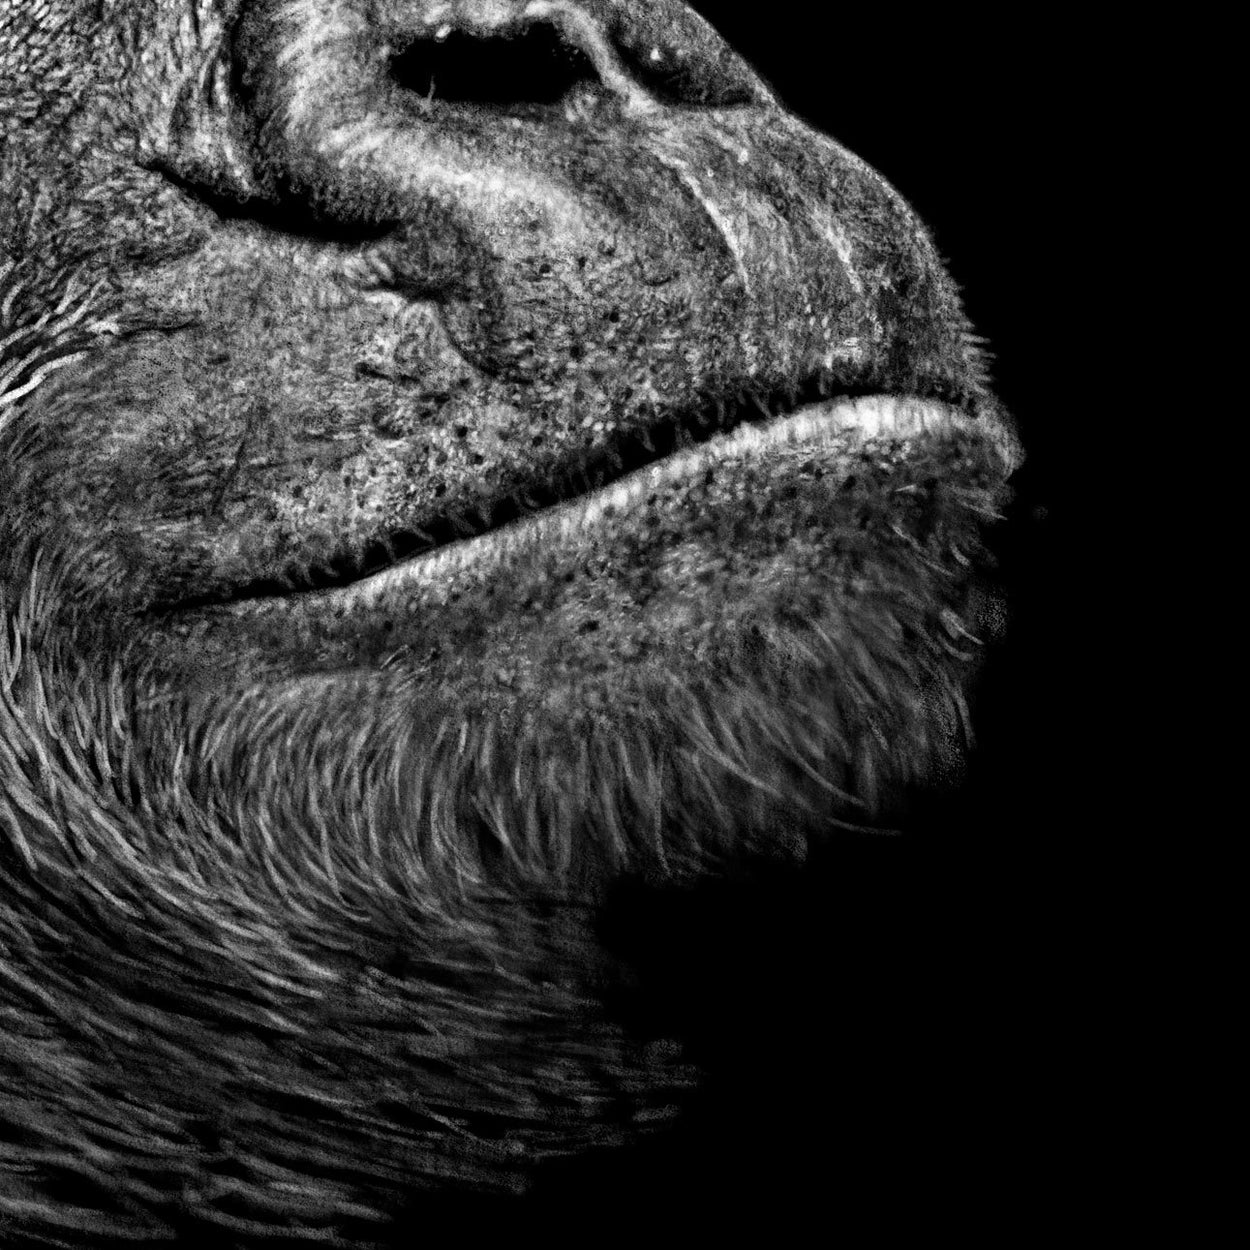 Gorilla Drawing Close-up - The Thriving Wild